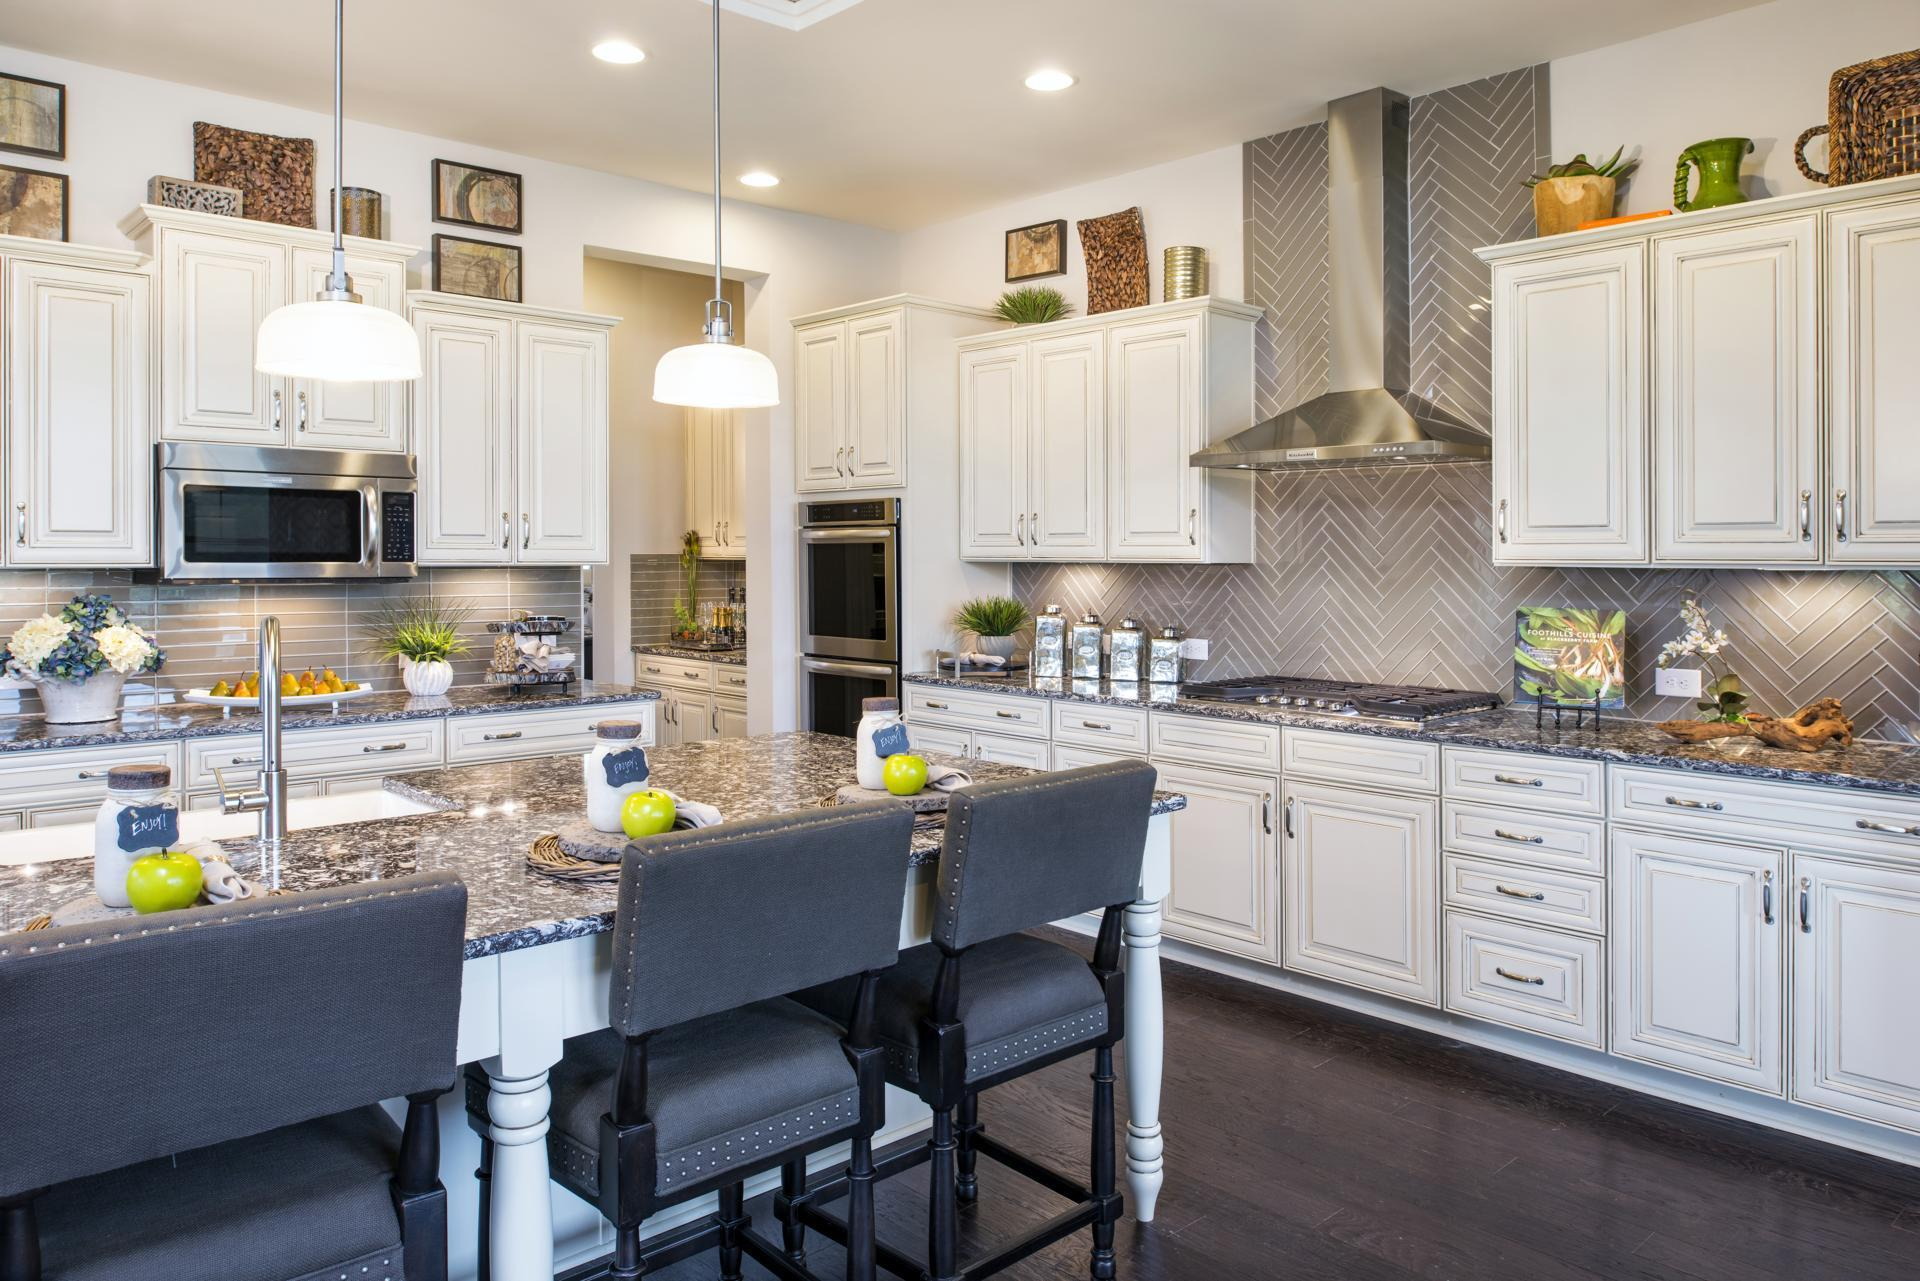 Kitchen featured in the Monticello By Drees Homes in Washington, VA